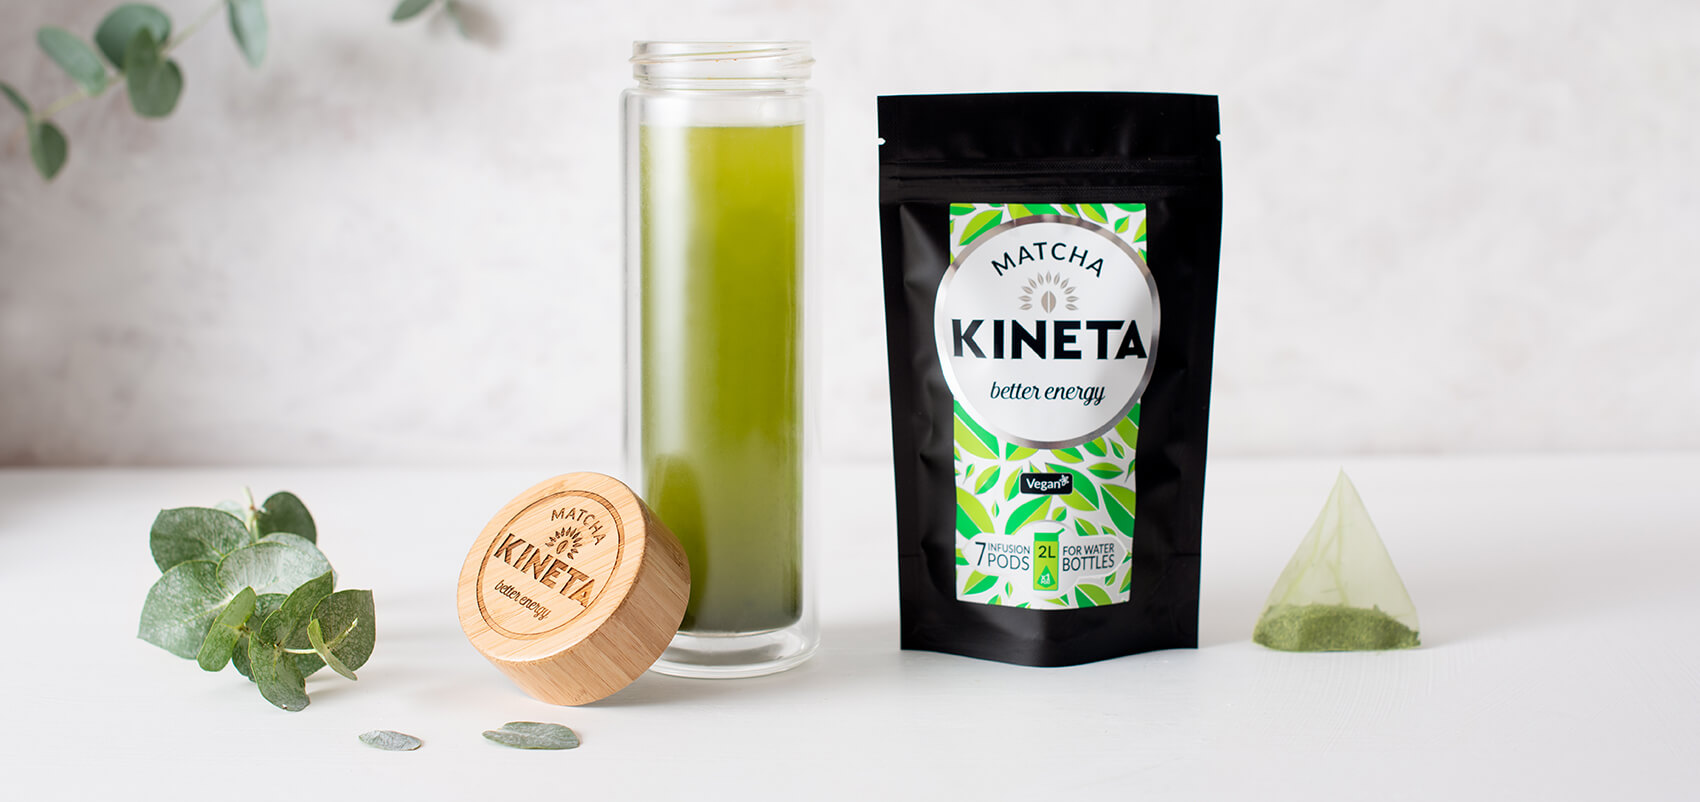 Kineta Matcha Infusion pods next to a cold brew infusion bottle